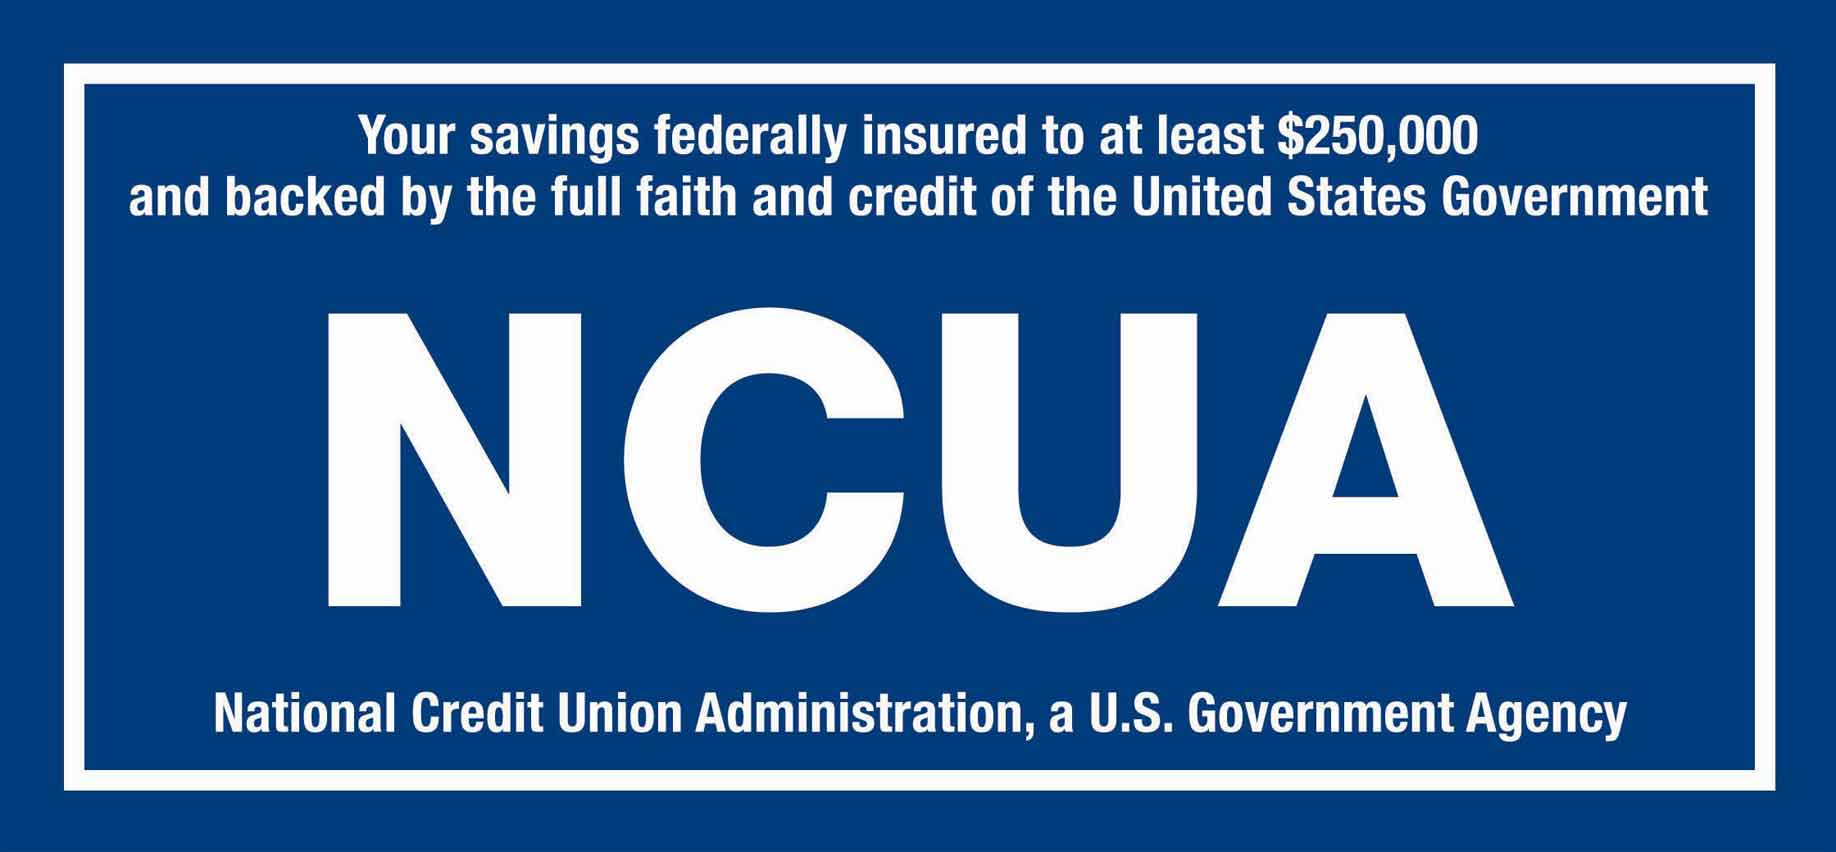 National Credit Union Administration (NCUA) - History, Role & Function